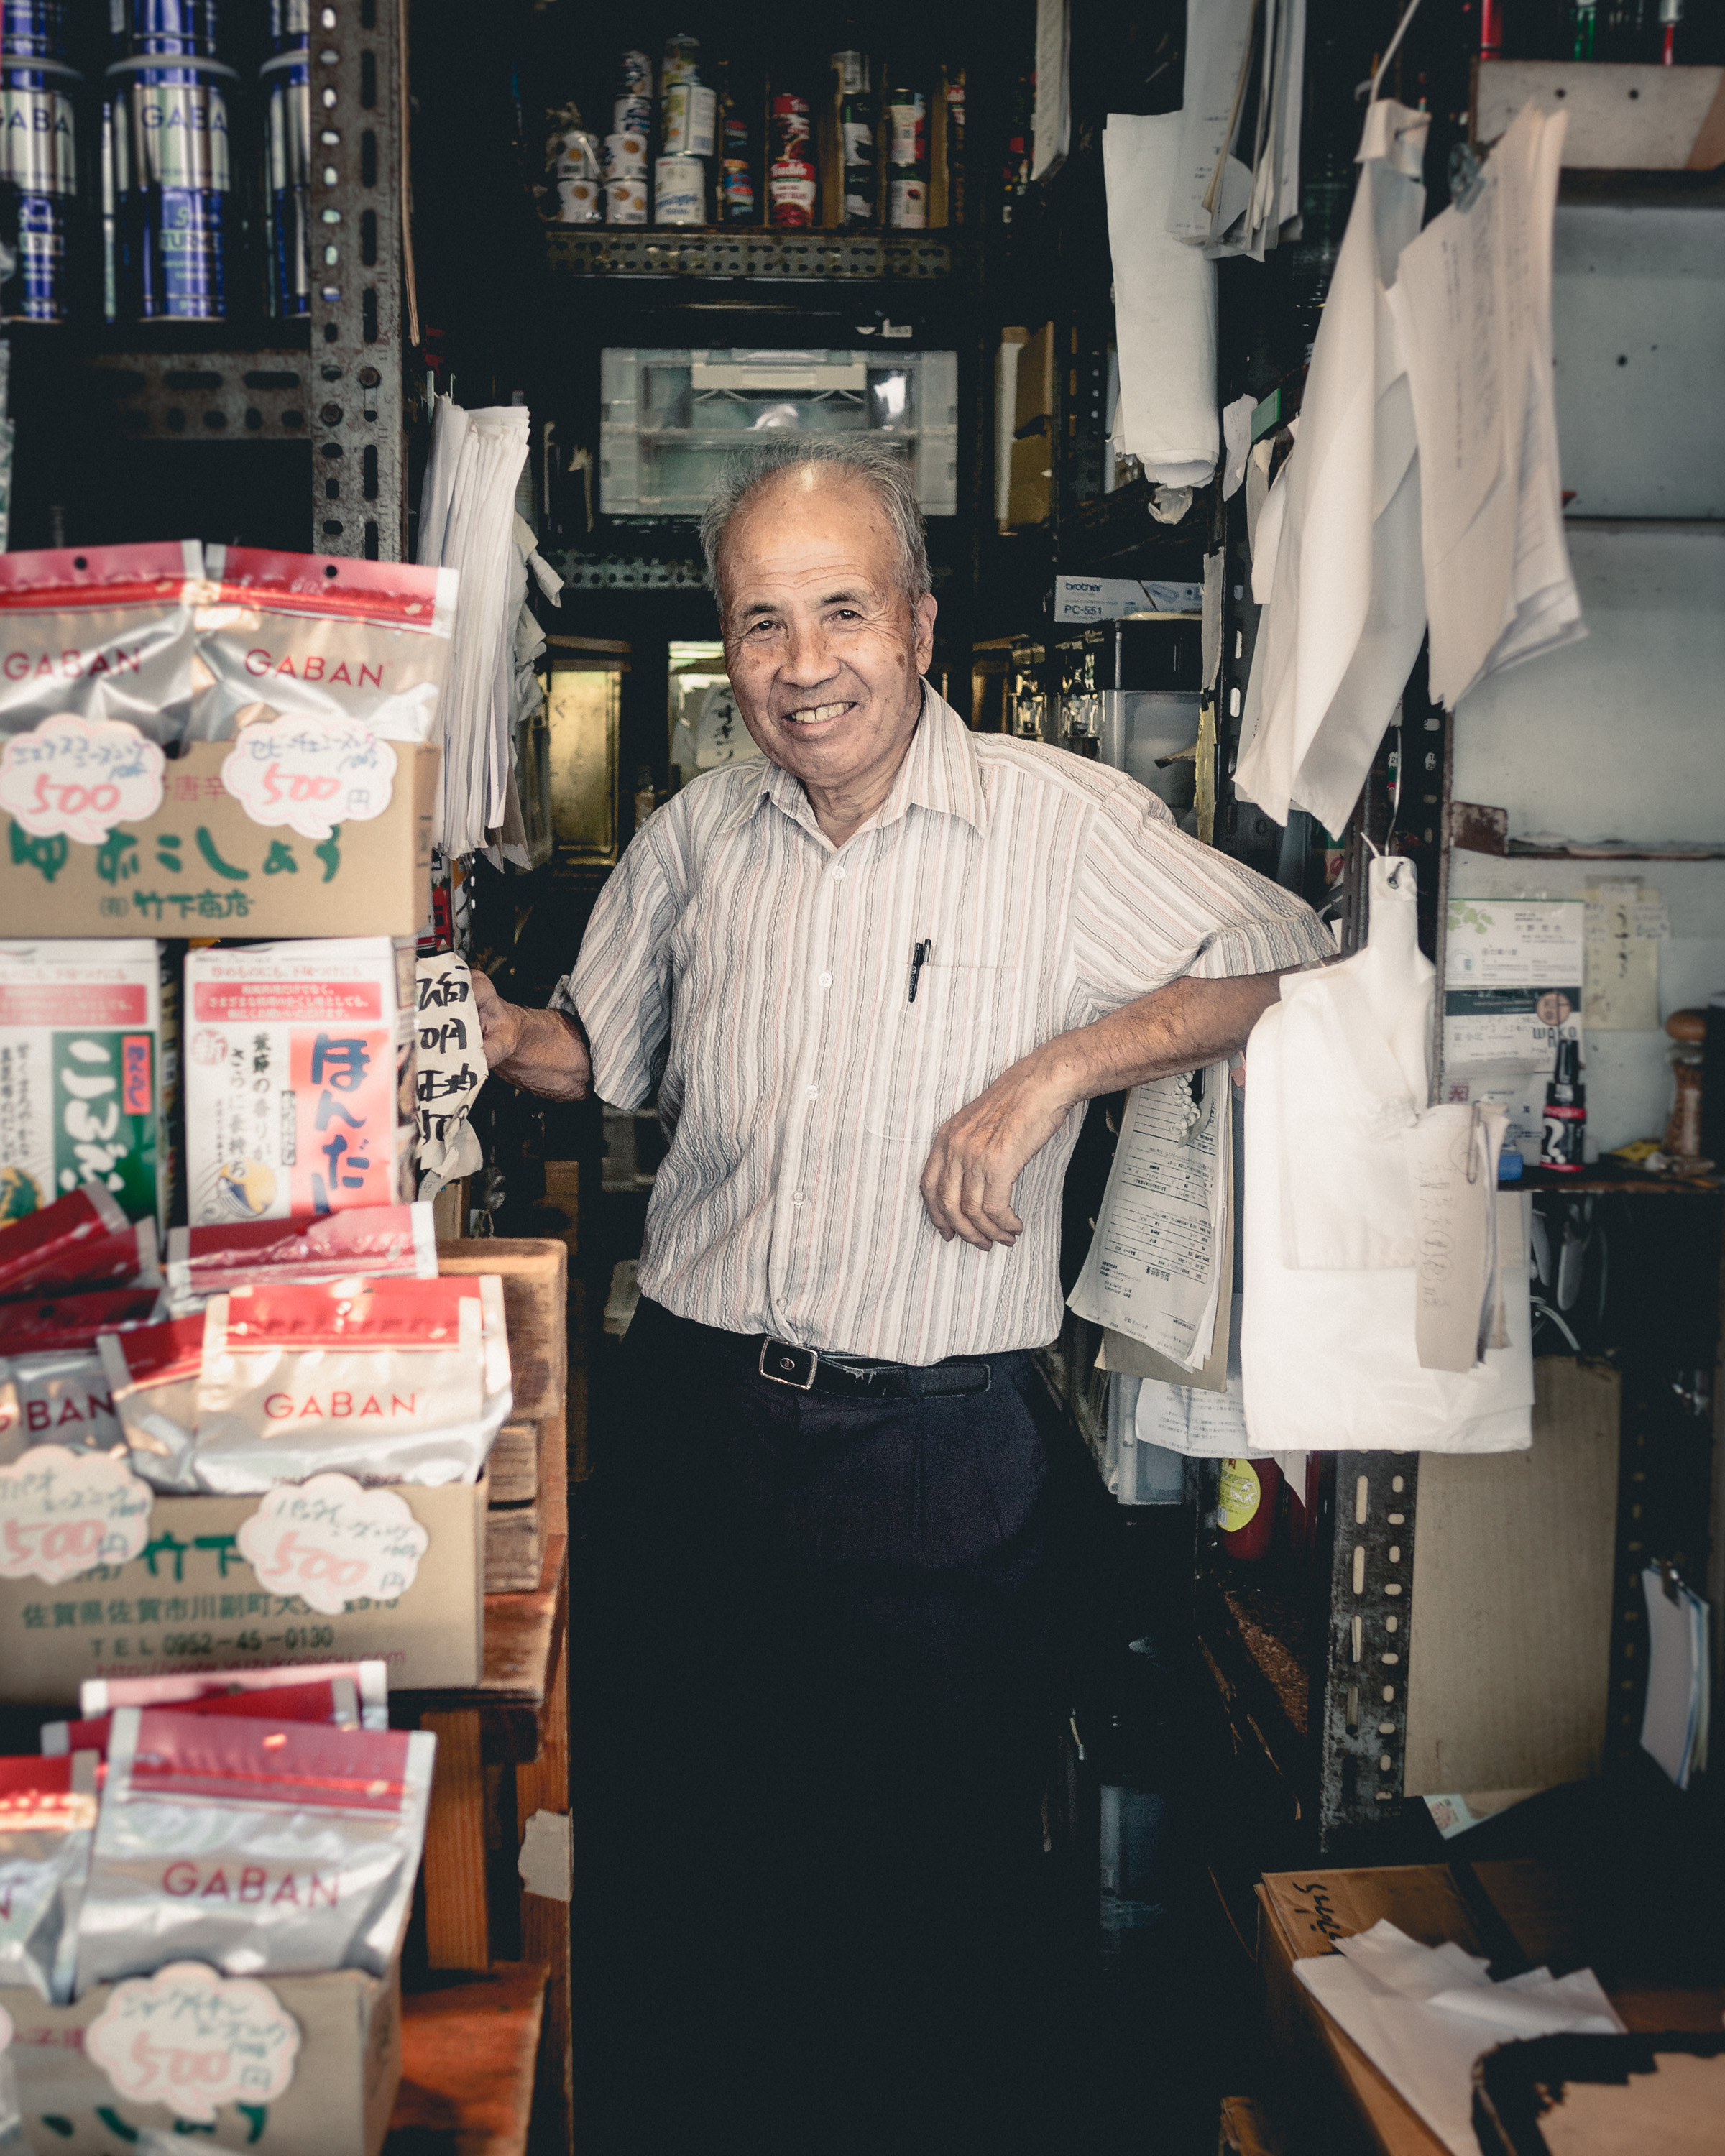 Street Photography Shot of An elderly vendor manning his shop in Tsukiji fish market, Tokyo, Japan. He very kindly takes a moment to pose for a photo.